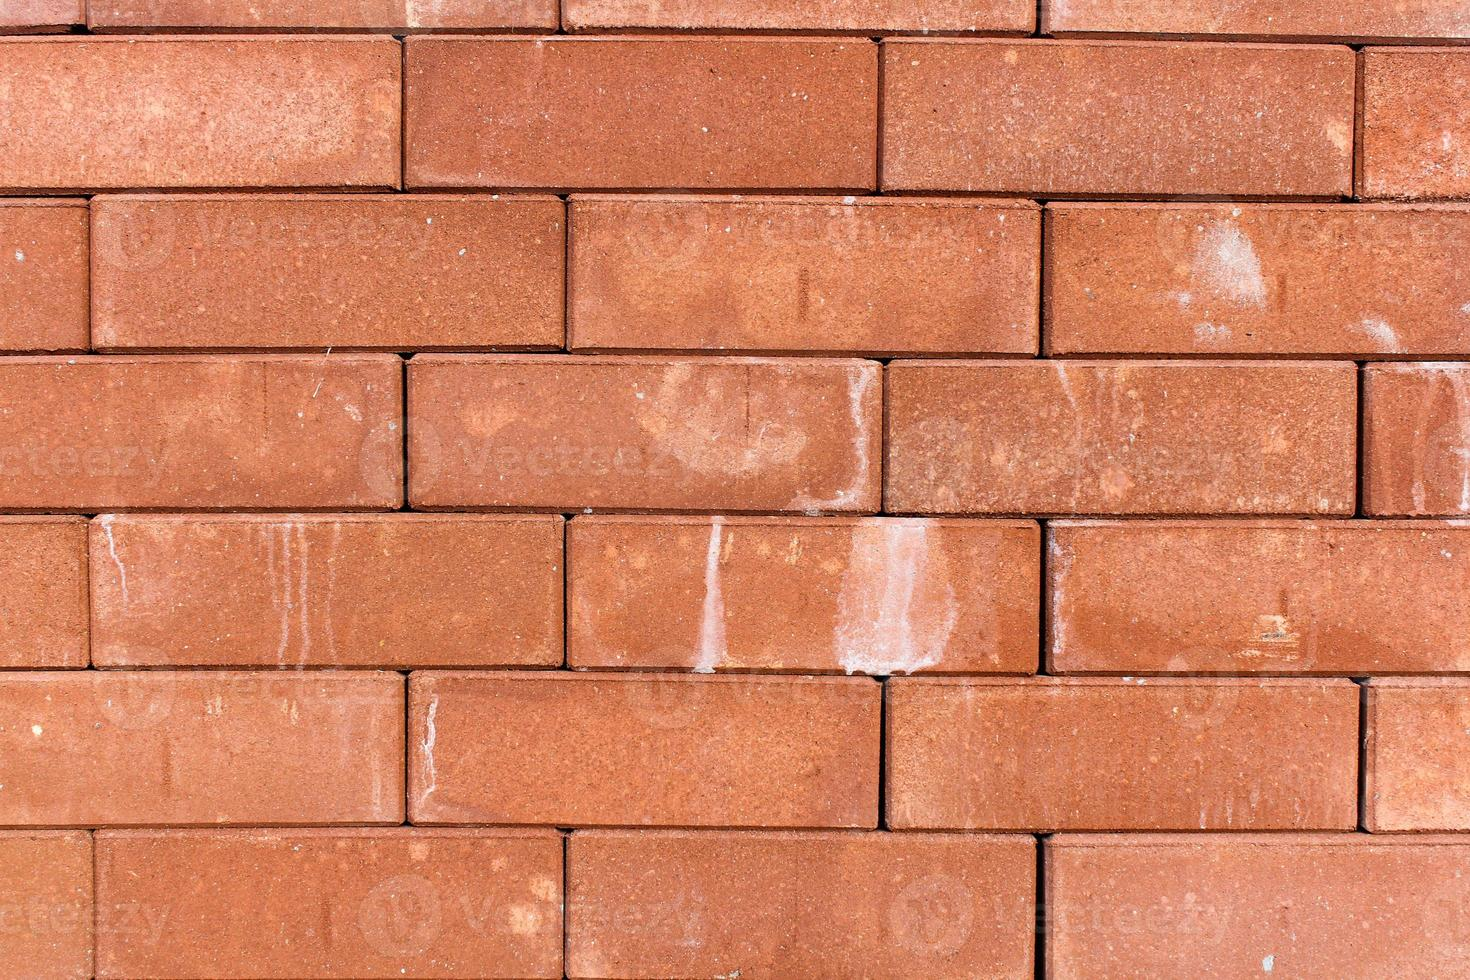 Orange block wall could be used for background texture photo